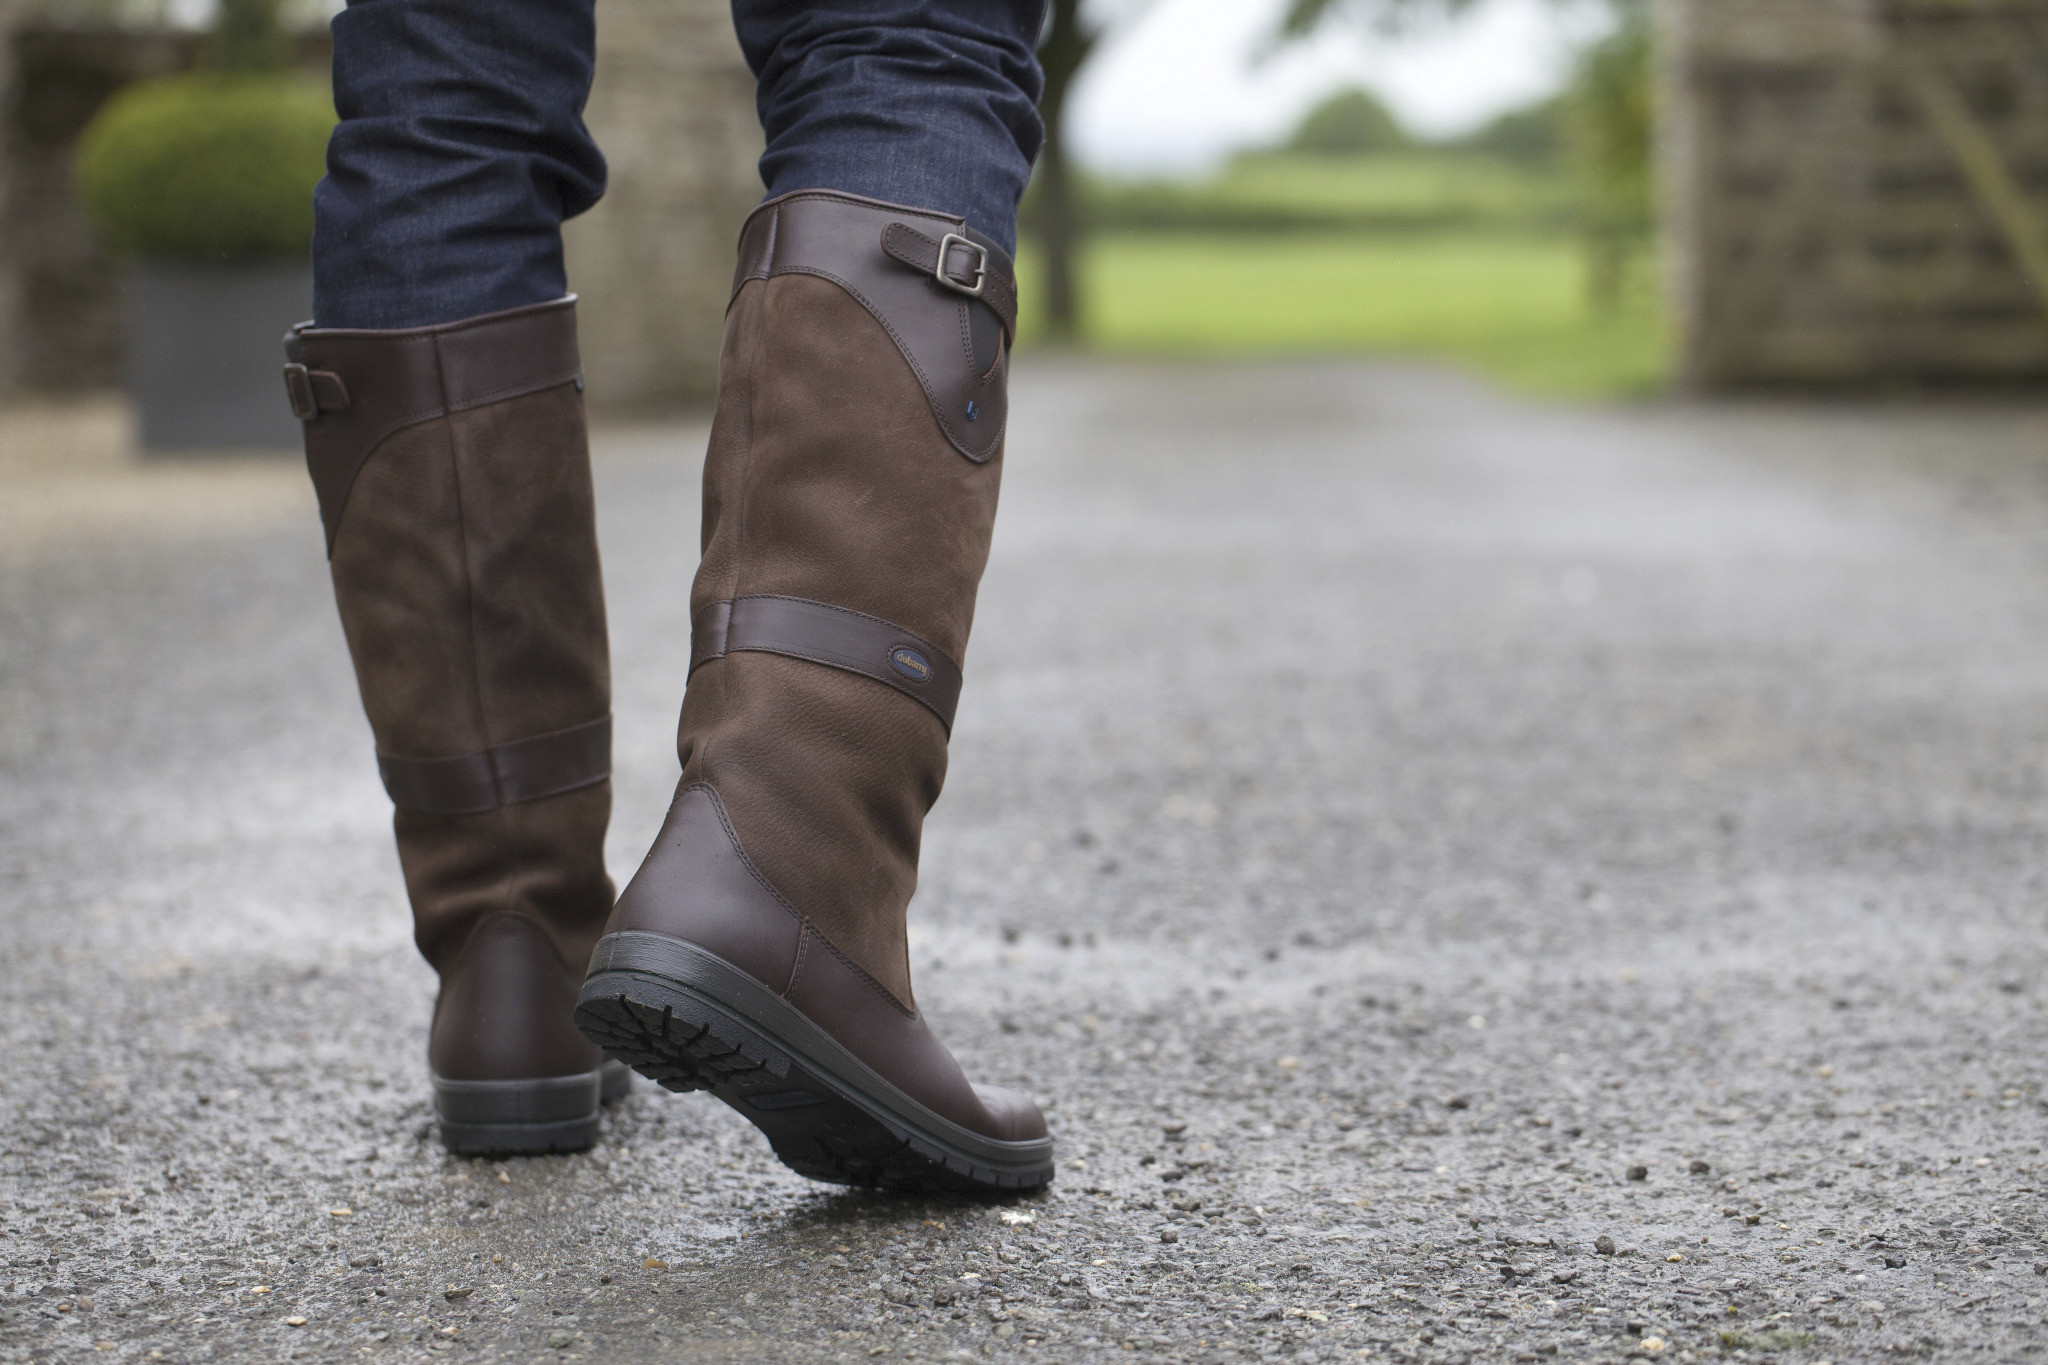 00a37d36ef3 DUBARRY TIPPERARY WOMENS COUNTRY BOOT — Gun Hill Clothing Company